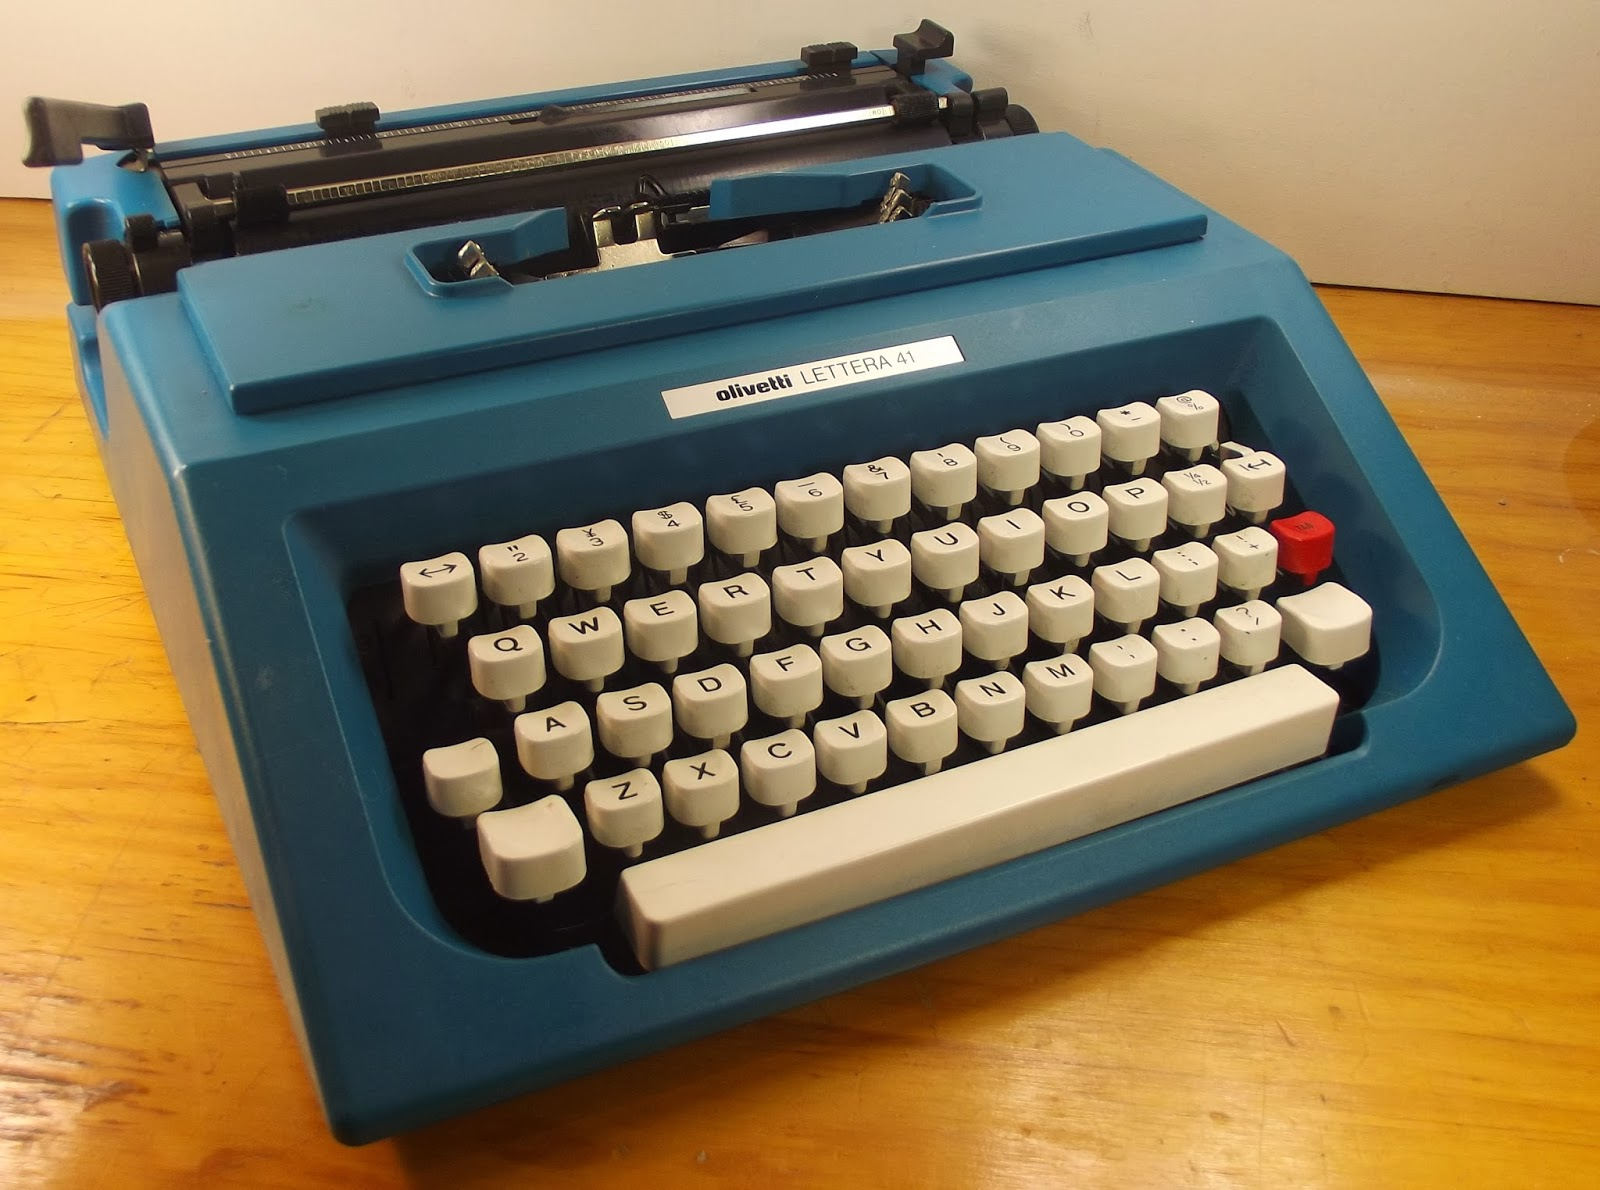 oz.Typewriter: Clip Art: How Olivetti Changed Track with its Last.